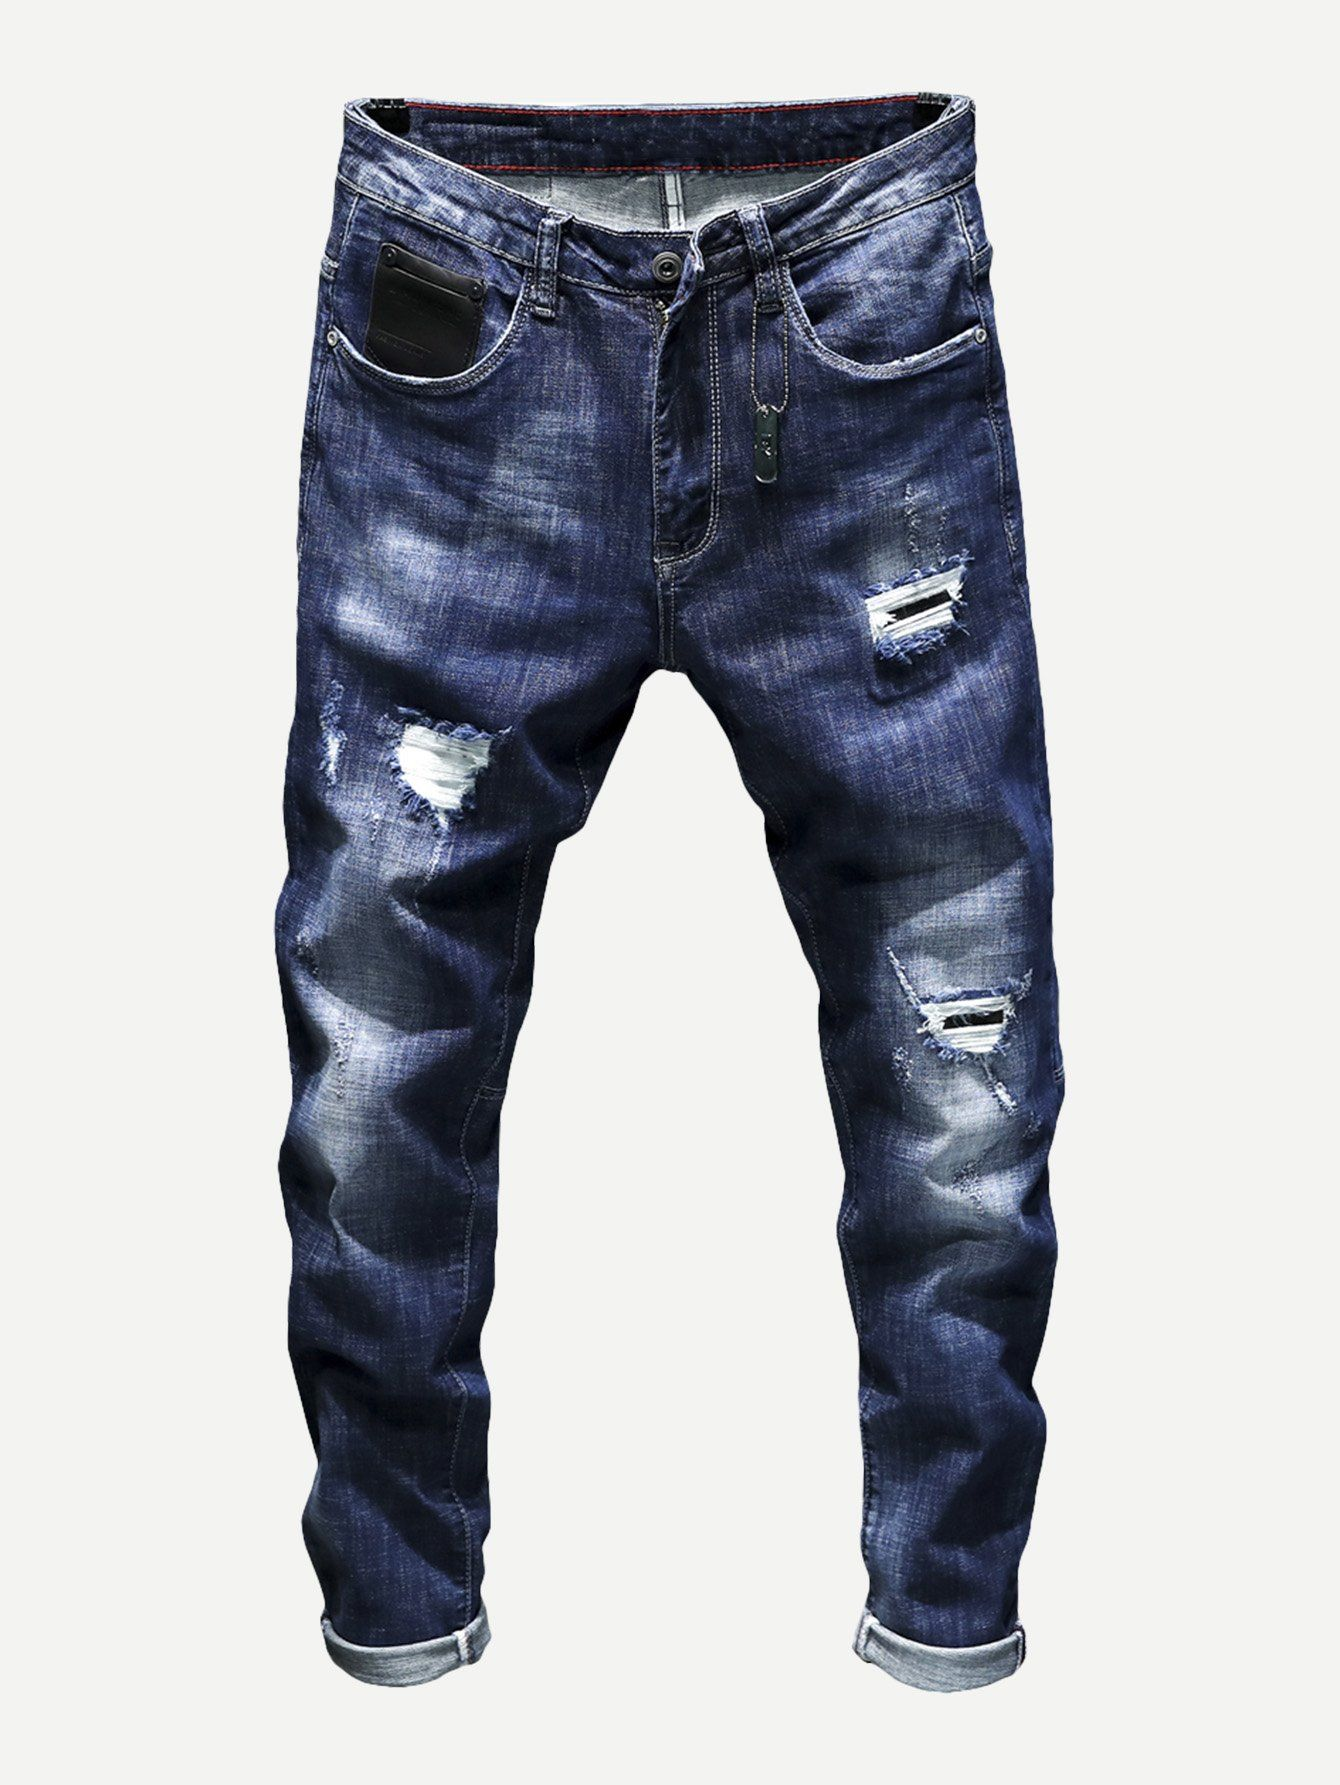 Romwe Mens Jeans Review